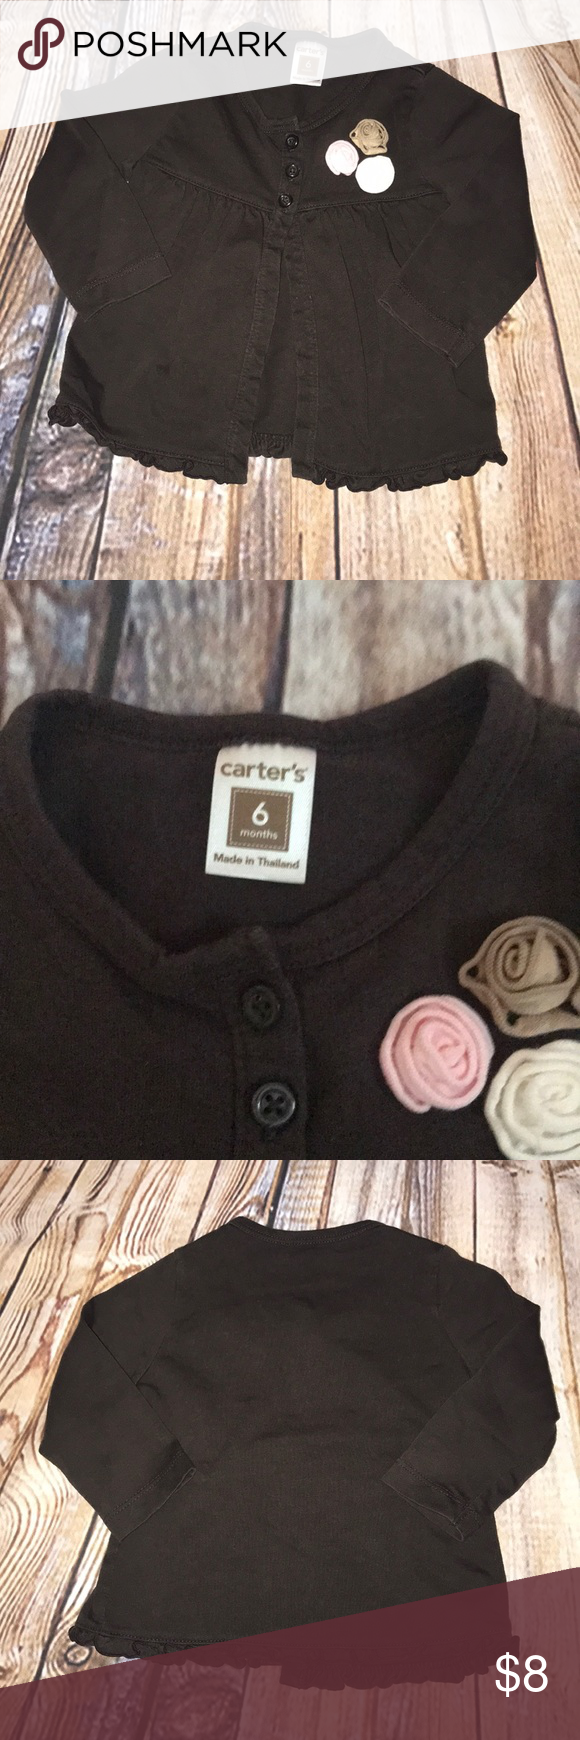 7acc81a76 CARTER S BABY GIRL CARDIGAN SIZE 6 MONTHS In good condition. Brown ...